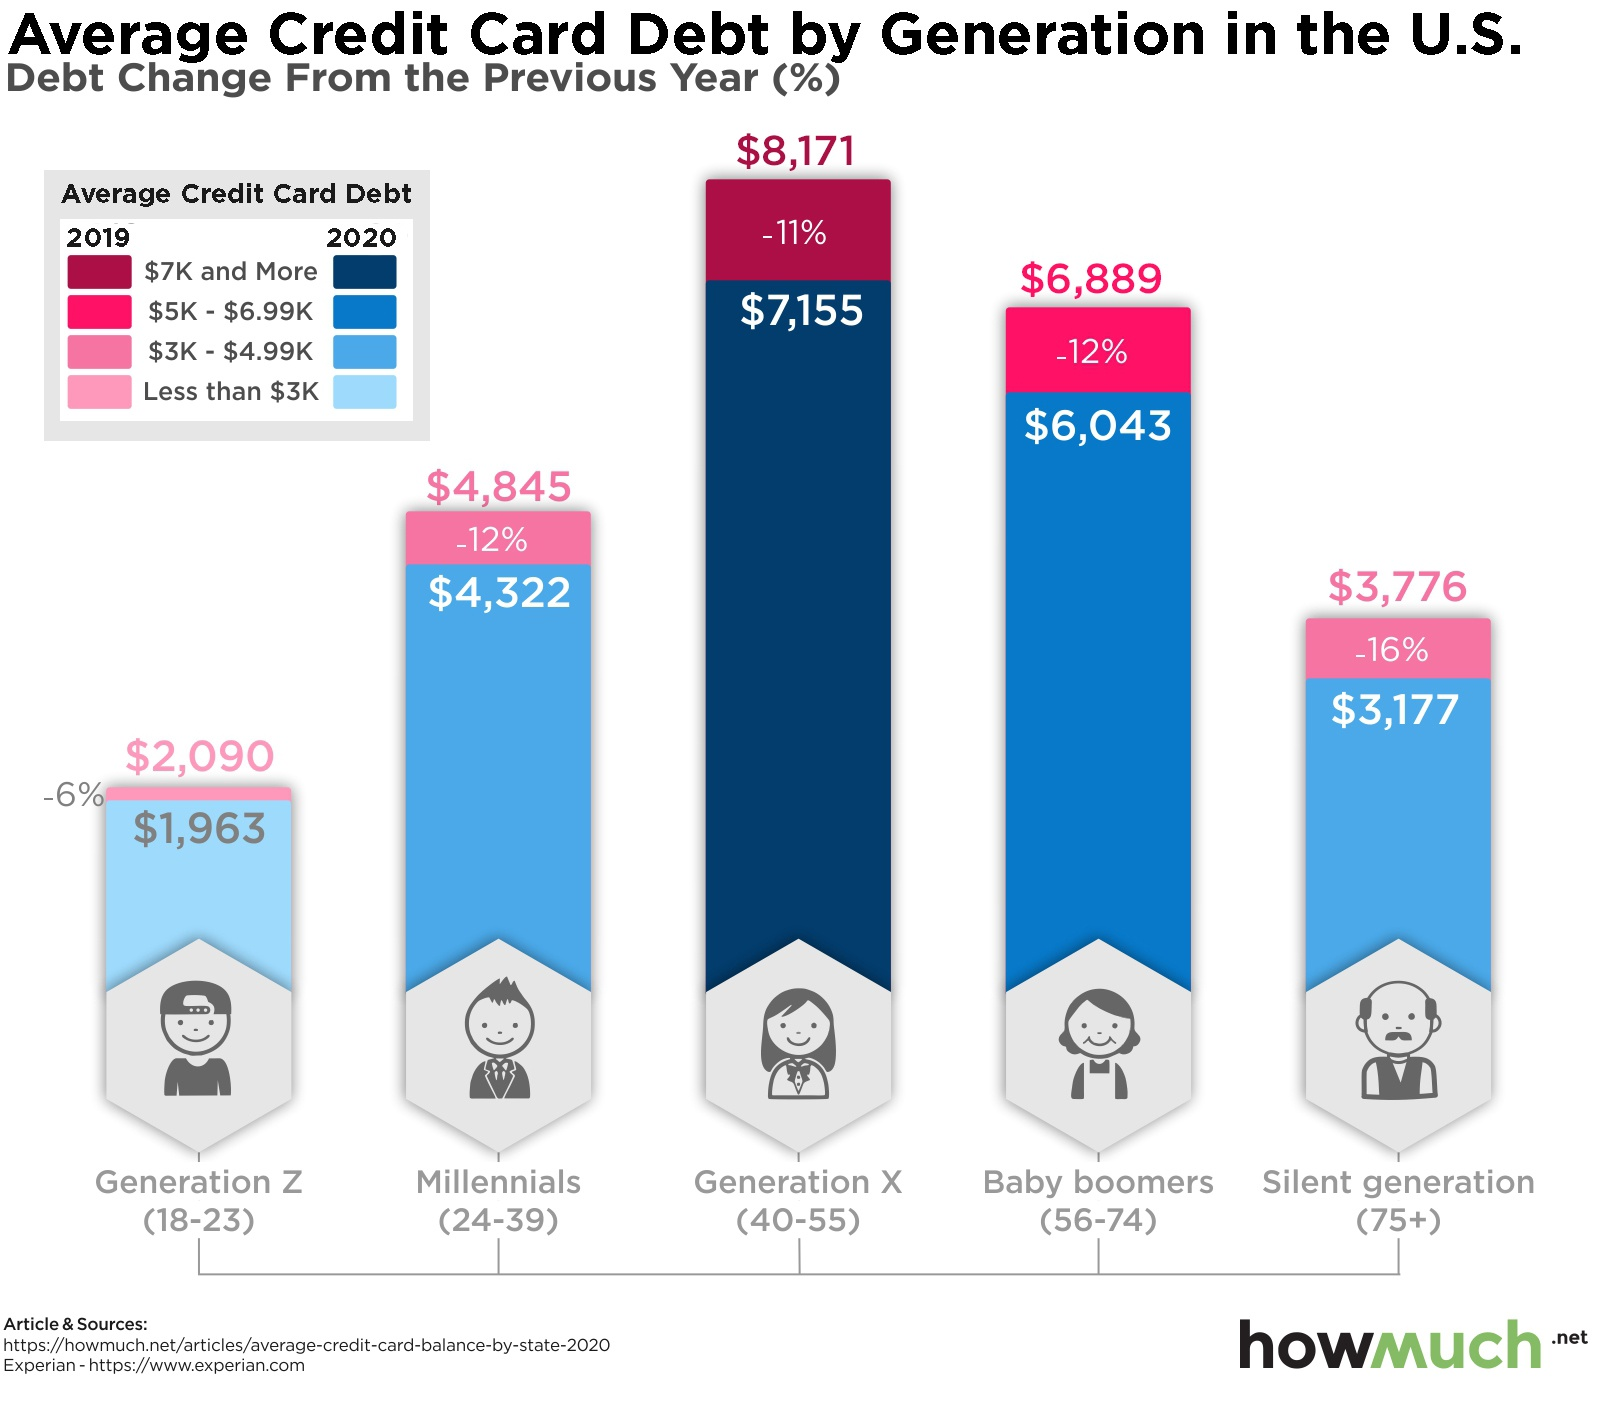 Credit card debt by generation